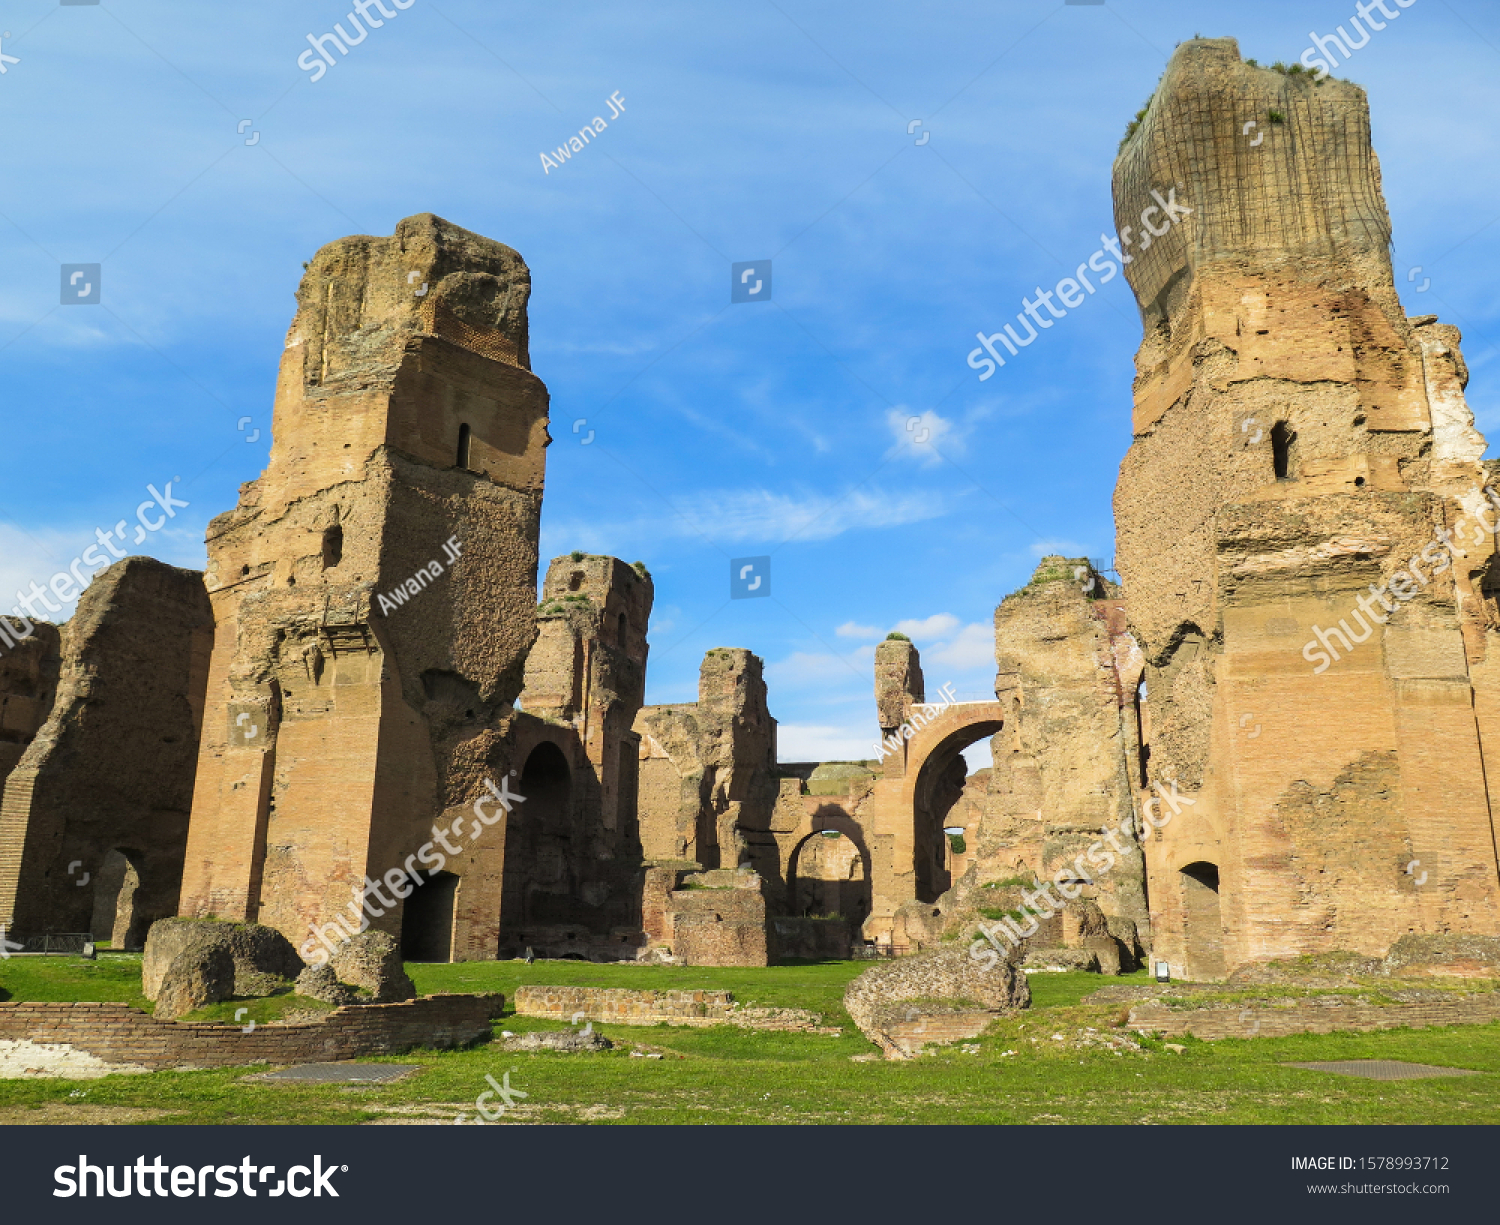 Ruins of Caracalla baths in Rome, Italy